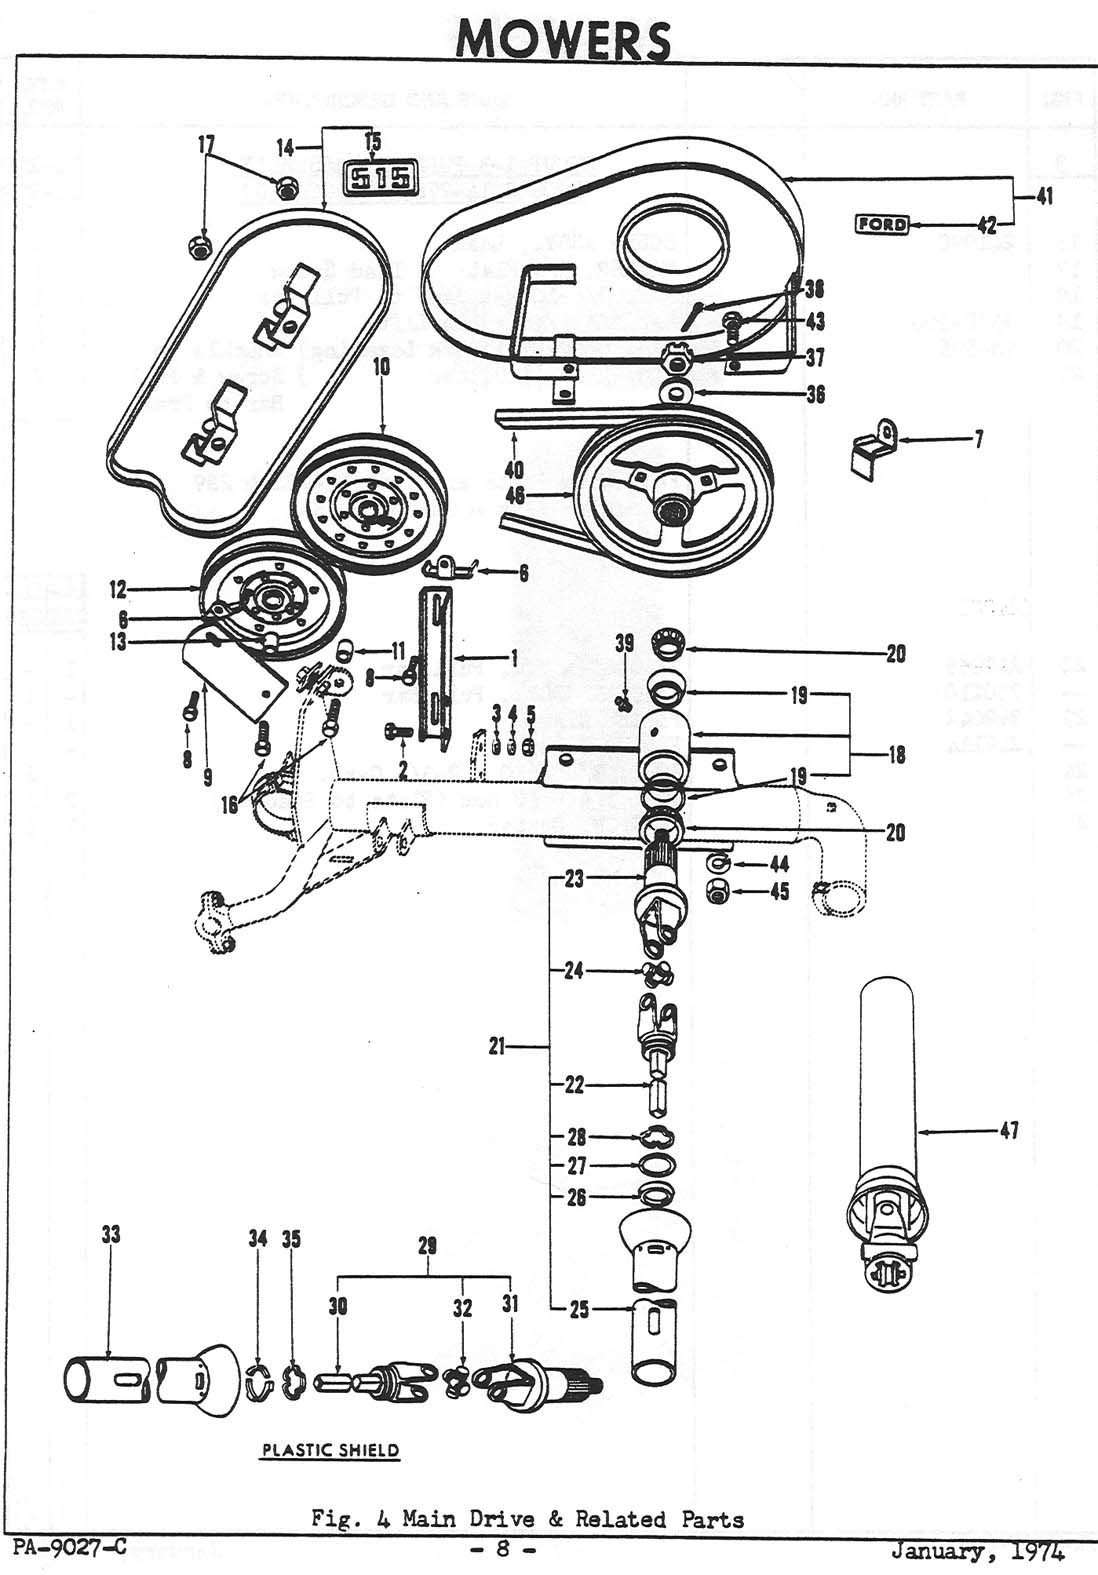 Main Drive Amp Related Parts 3 Pages